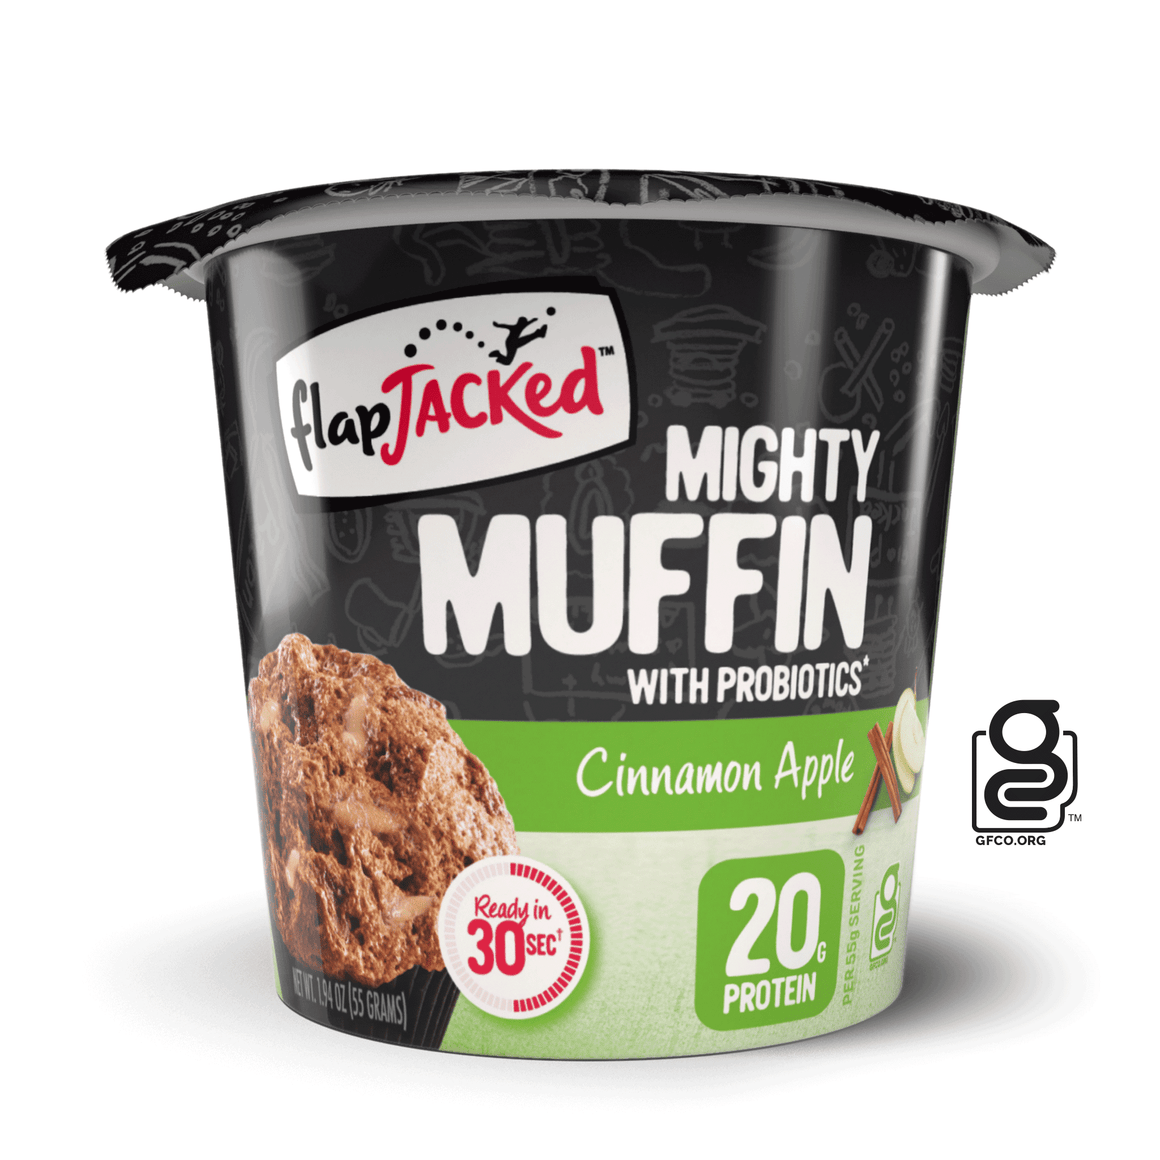 Cinnamon Apple Mighty Muffin - 12 Pack